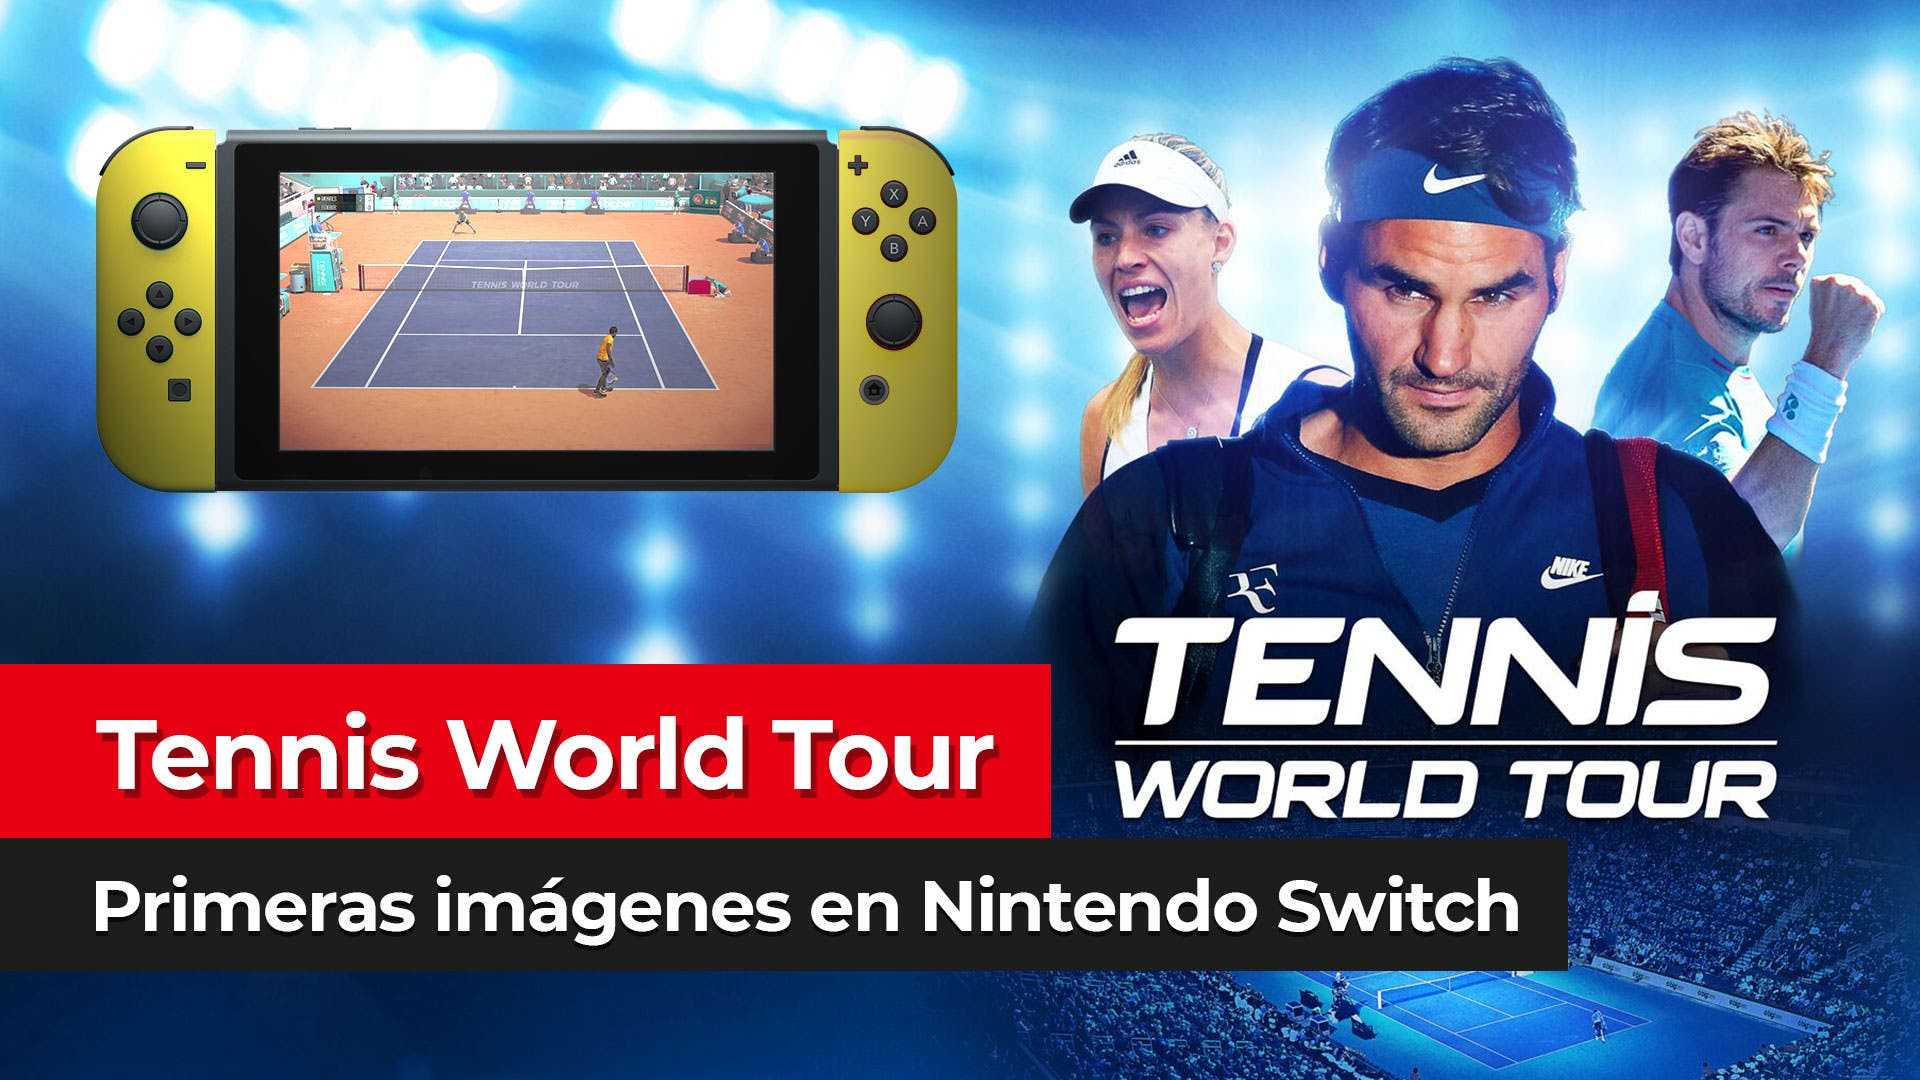 [Exclusiva] Primeras imágenes de Tennis World Tour en Nintendo Switch